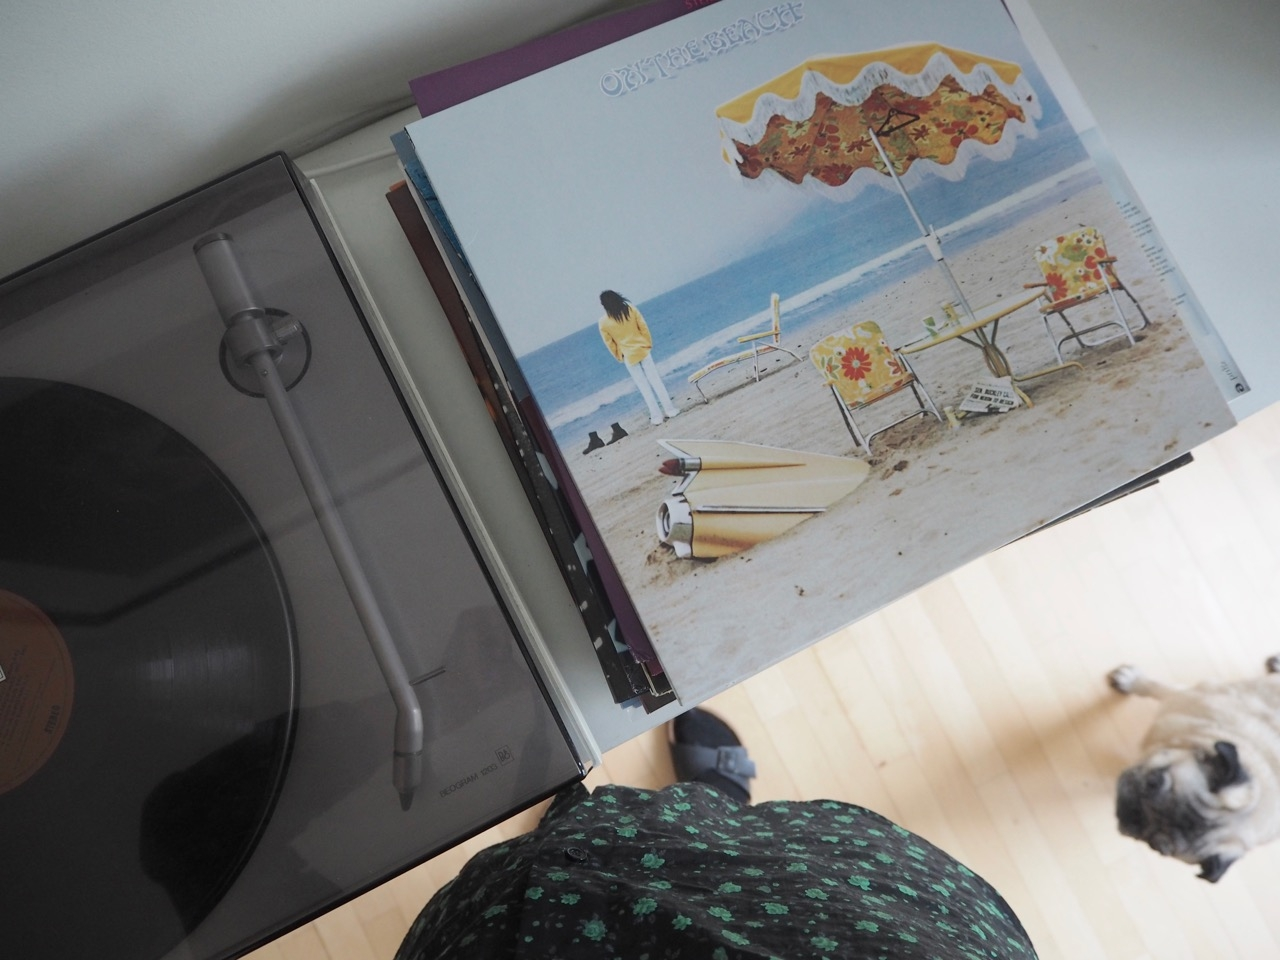 Neil_Young_on_the_beach_vinyl